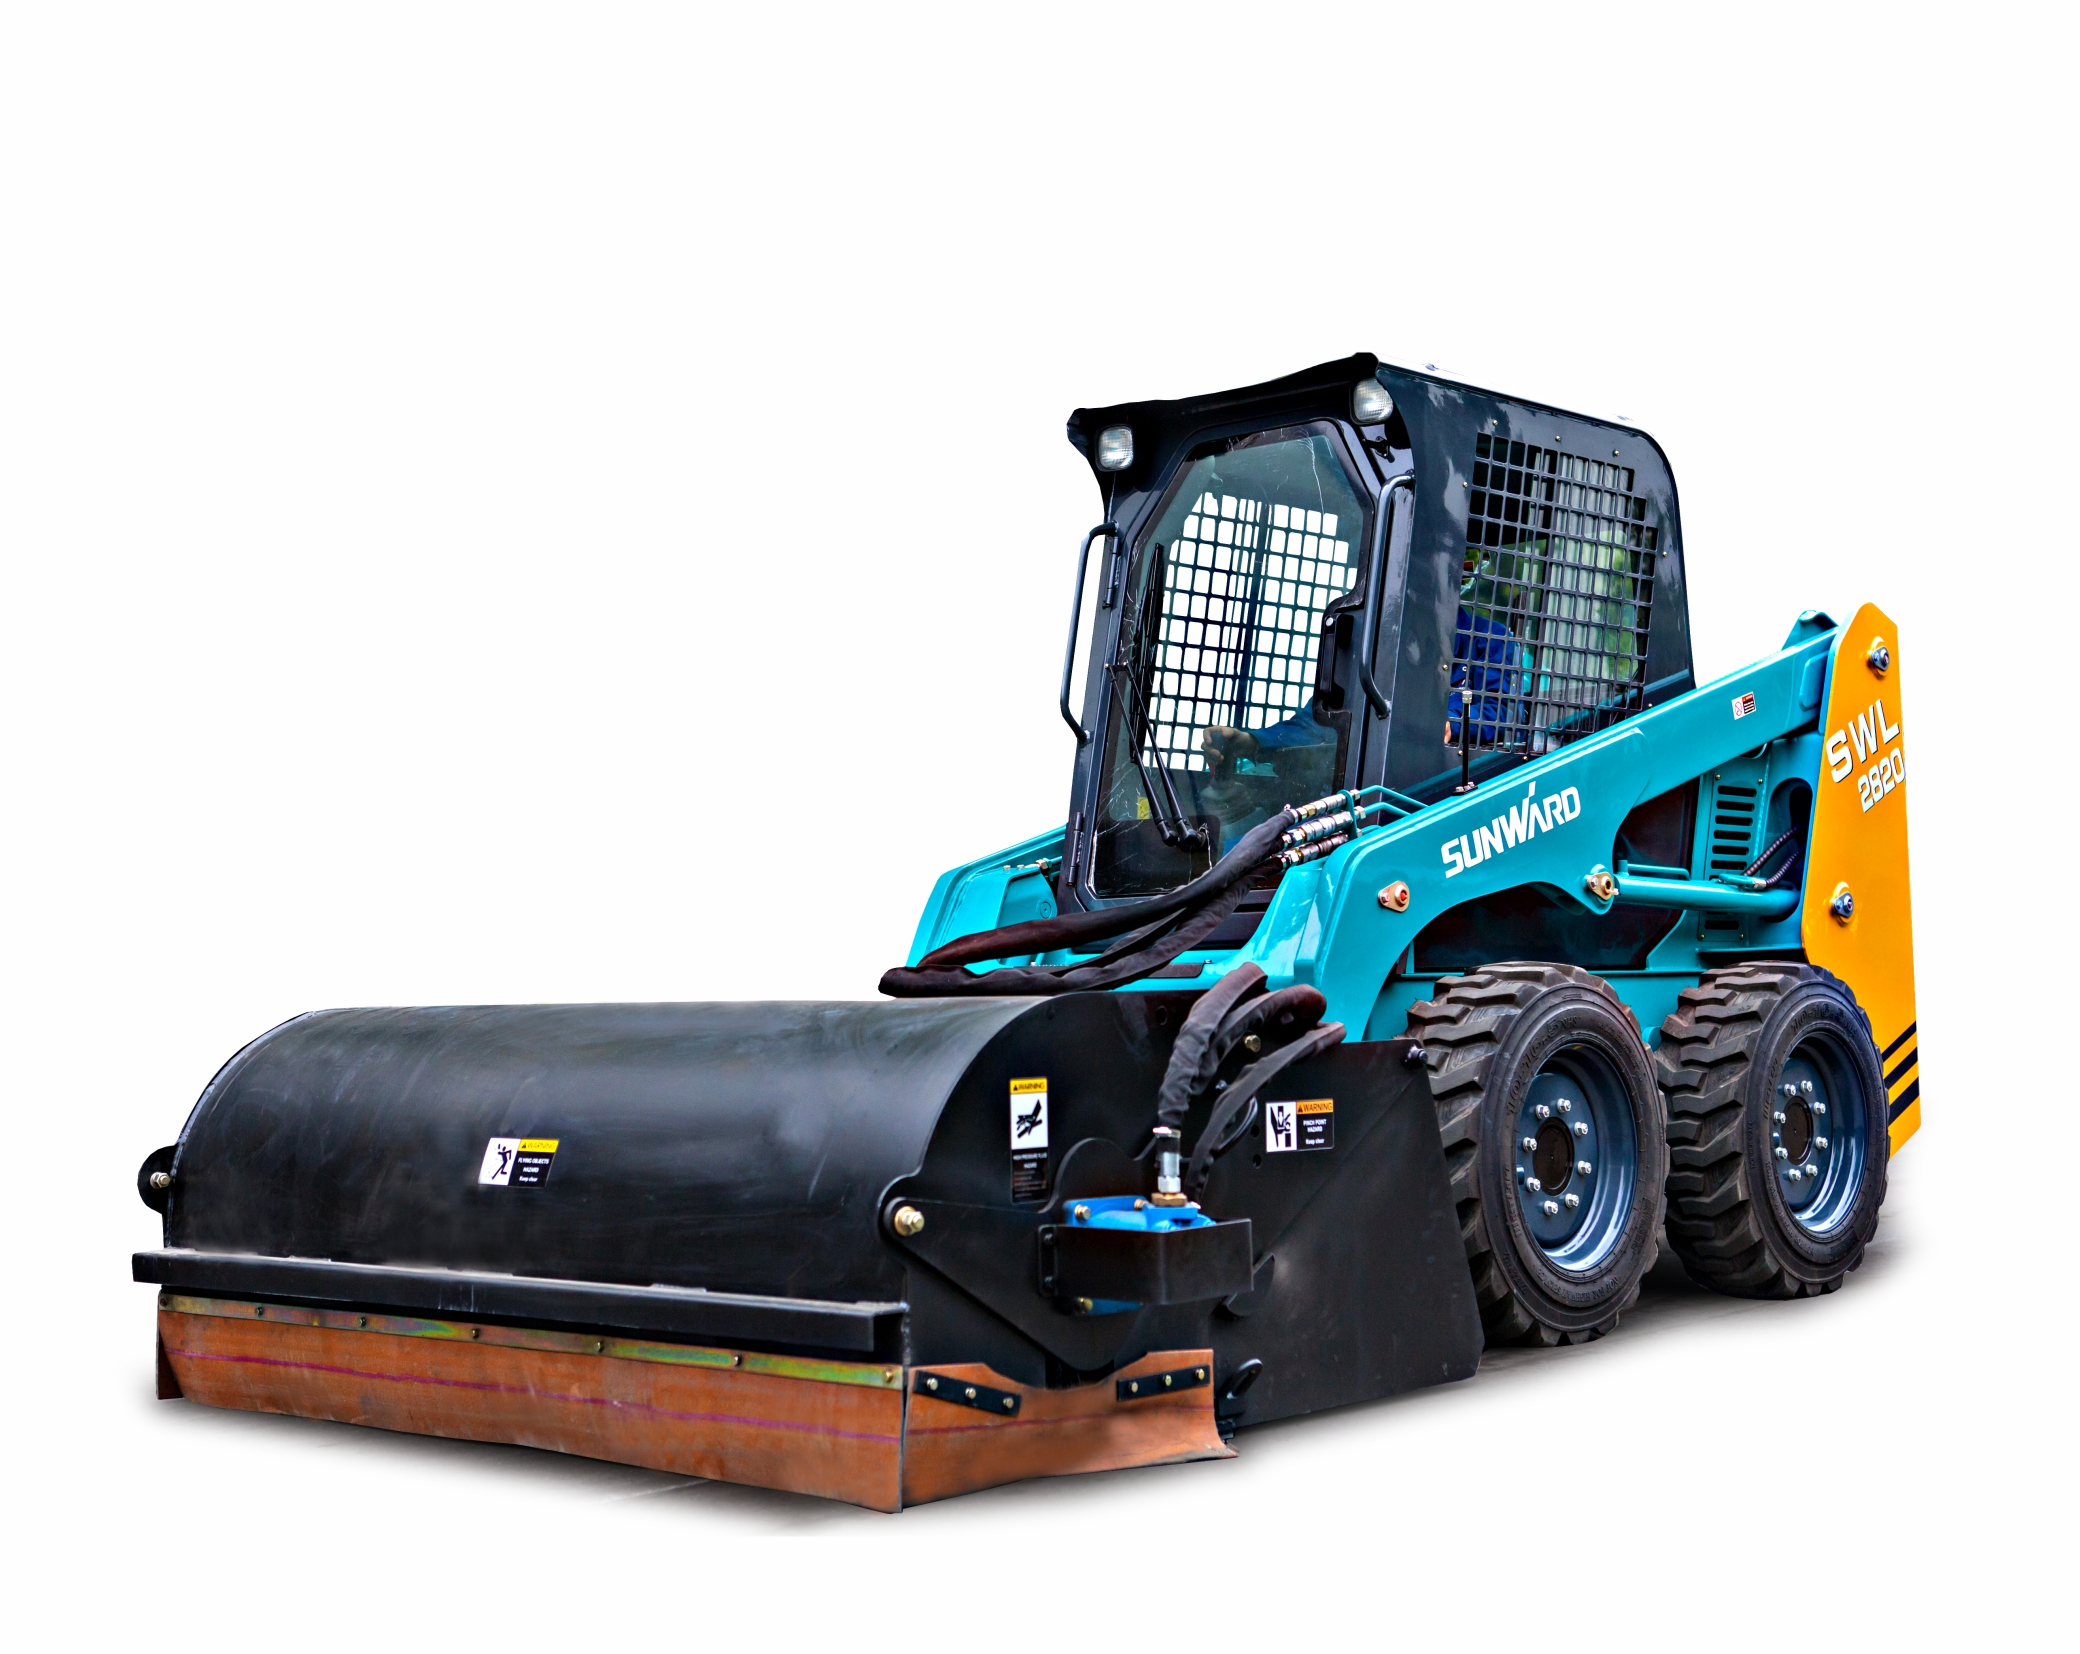 Sunward SWL2820 Wheeled skid steer loader